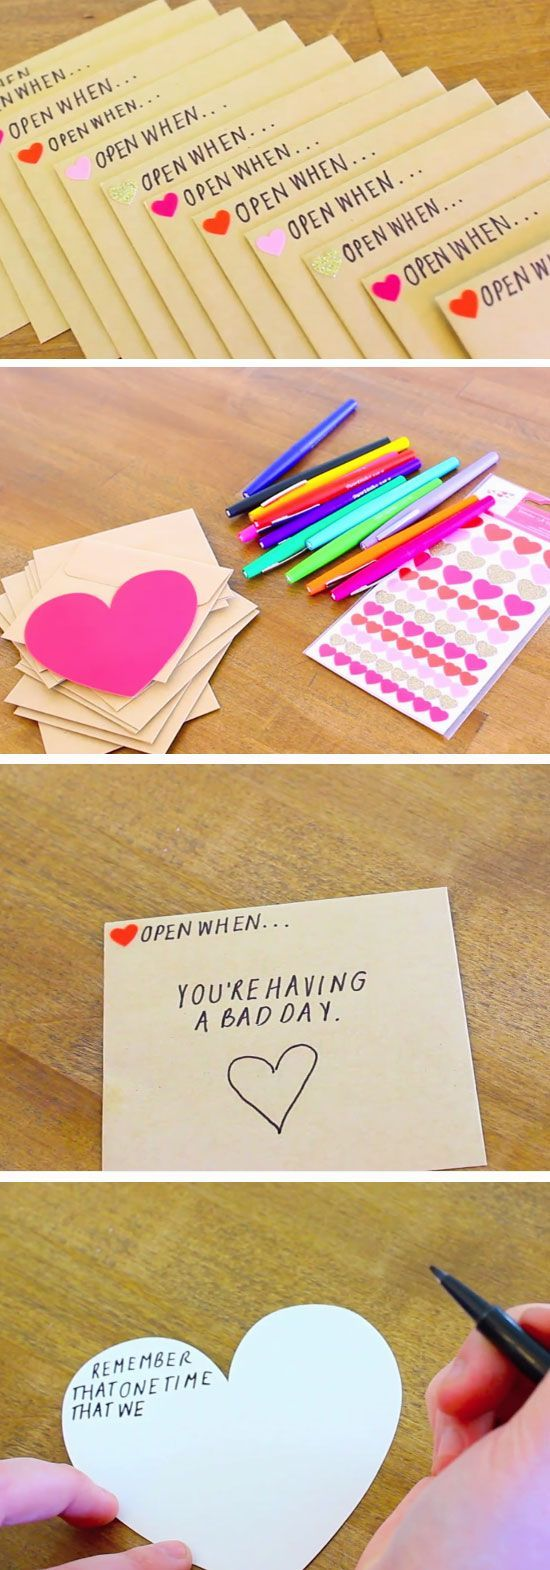 Open when envelopes 23 diy valentines crafts for for Valentines day craft ideas for him